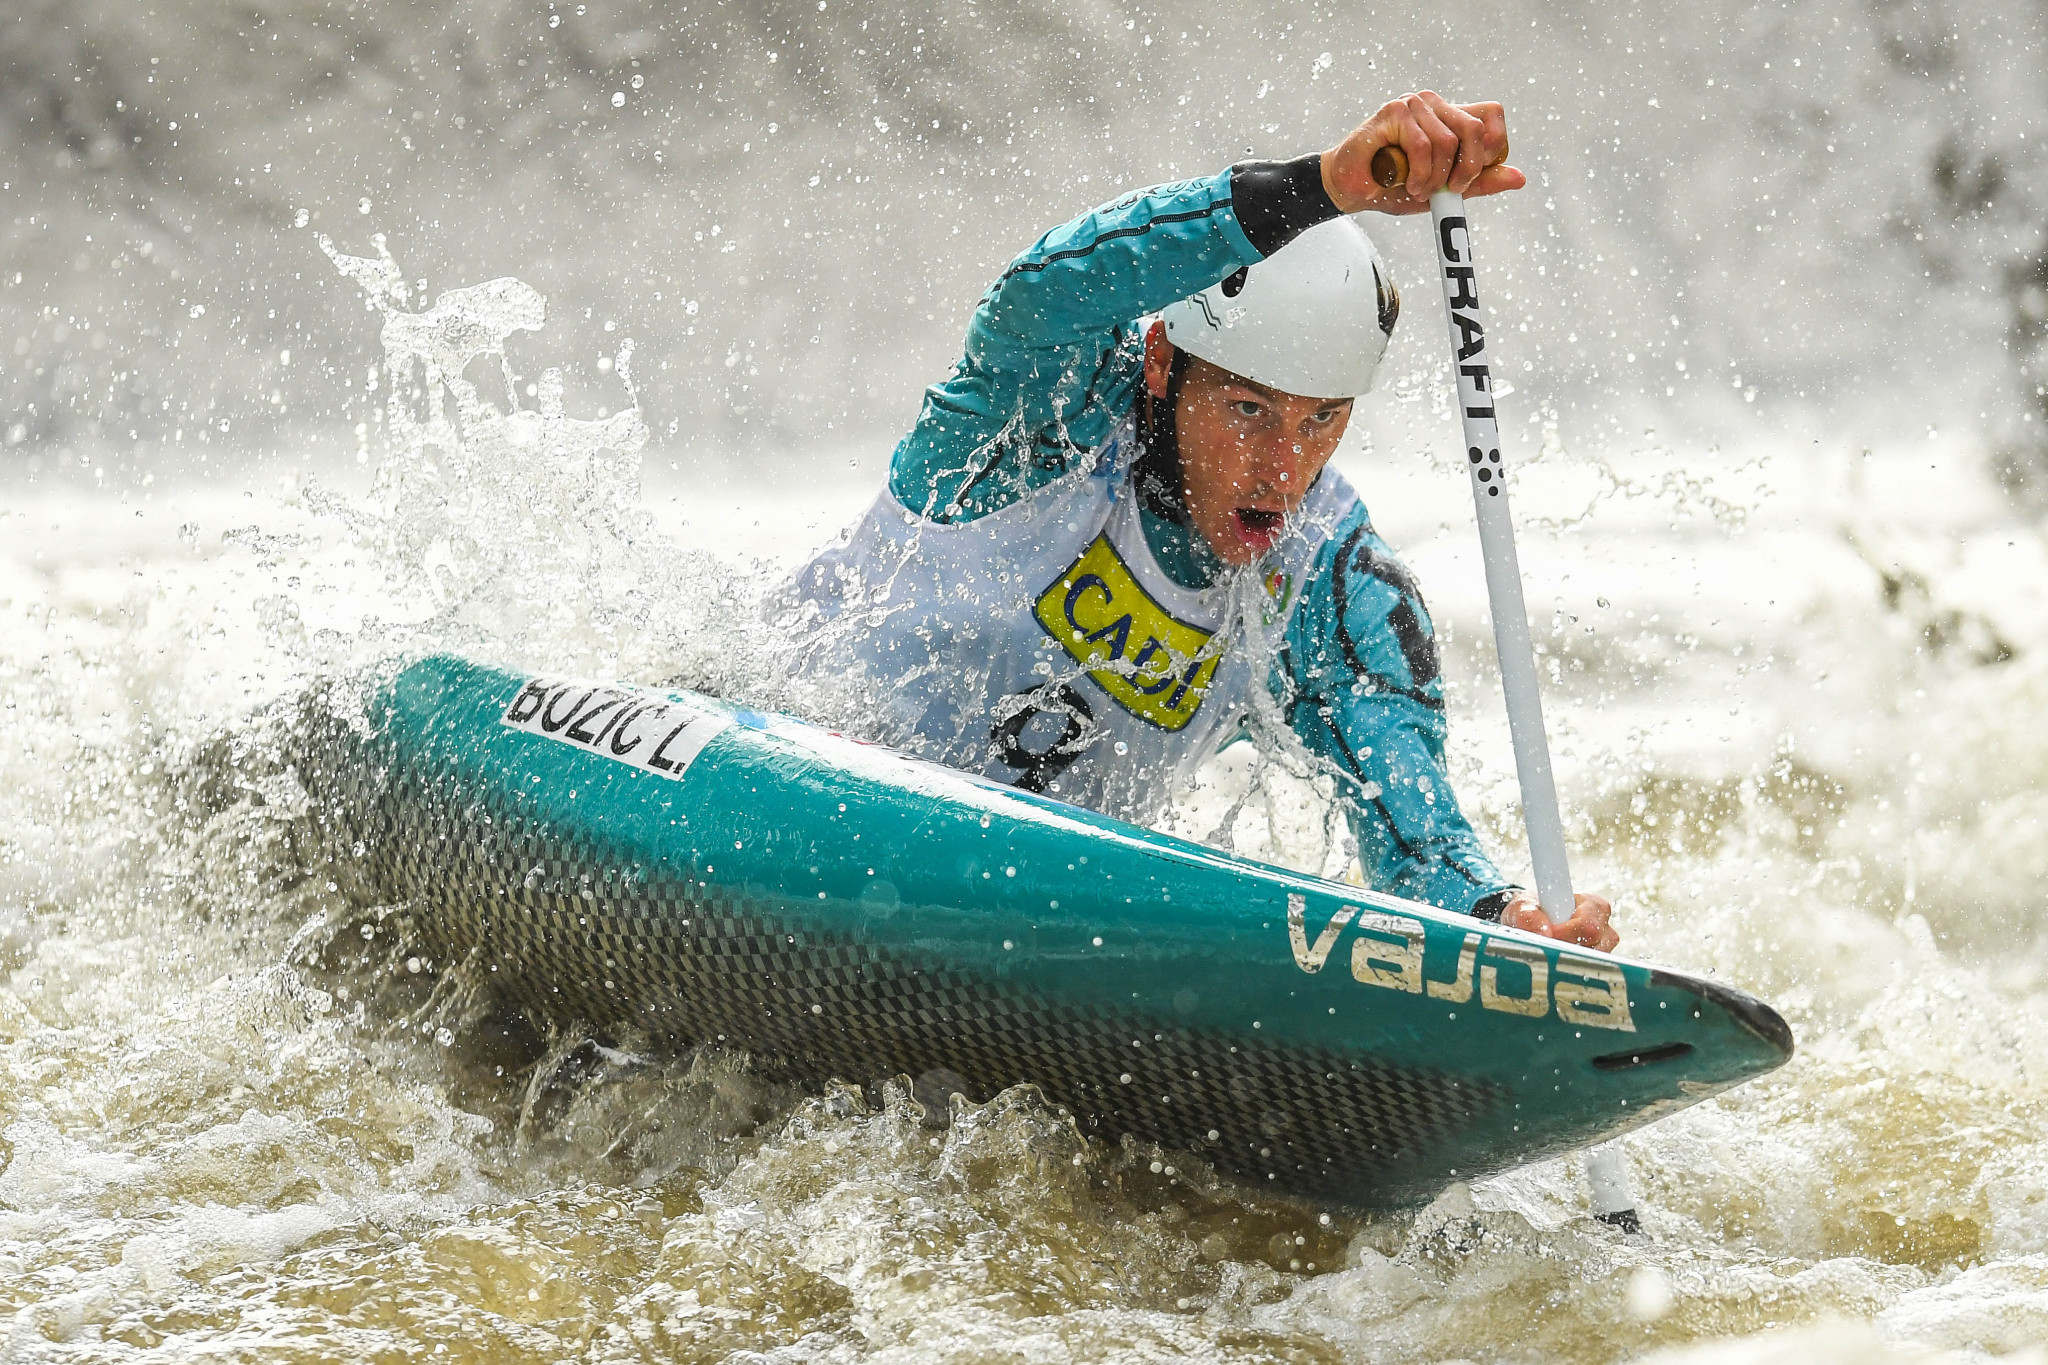 Luka Božič boosted his hopes of representing Slovenia at Tokyo 2020 with victory at the ICF Canoe Slalom World Cup in Tacen ©Getty Images